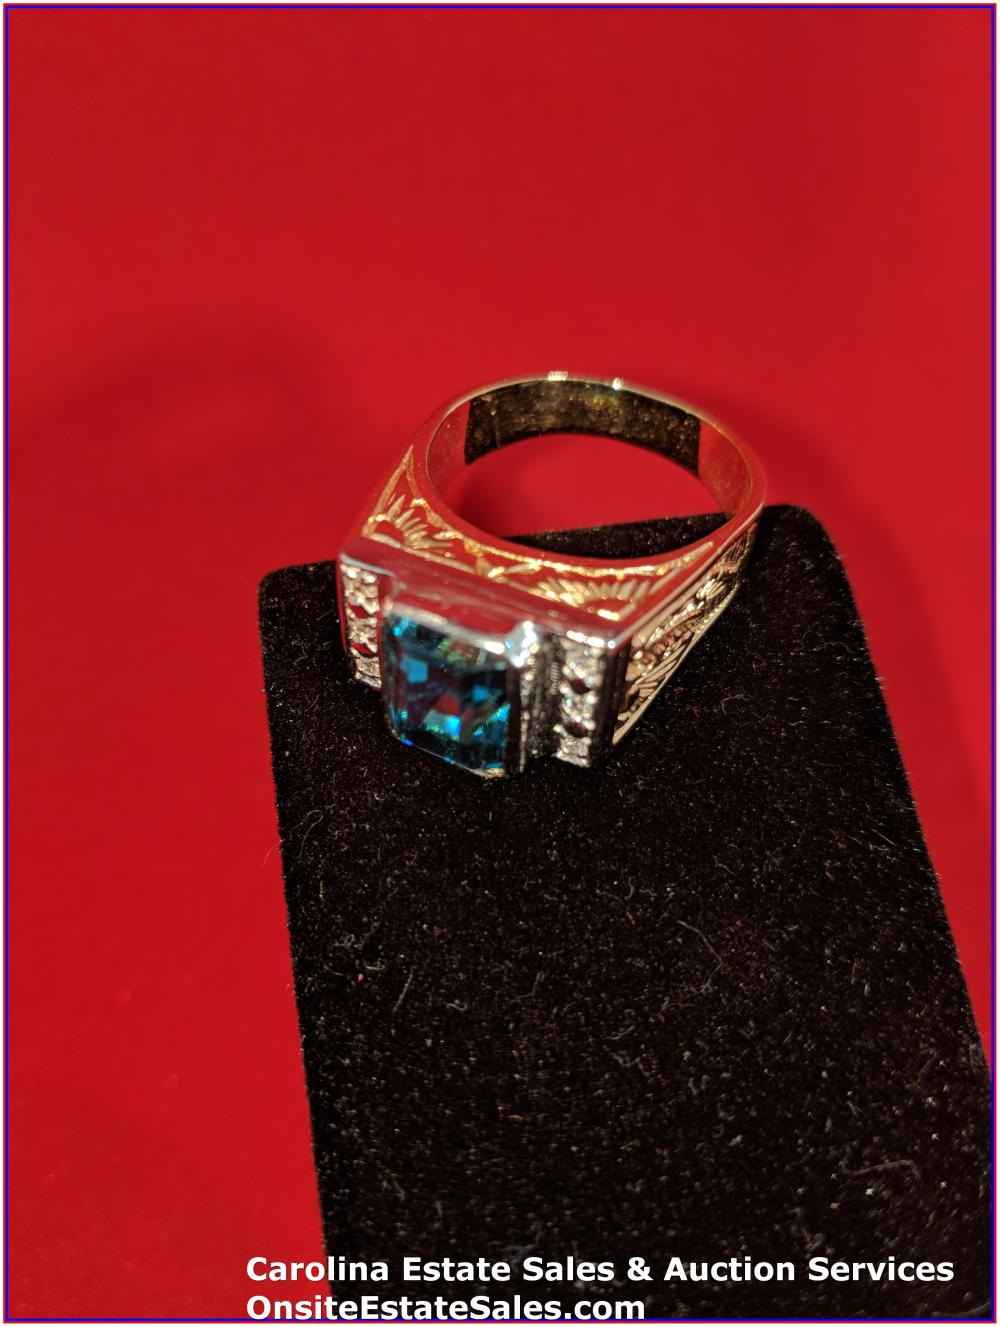 18K Gem Ring Gold 15 Grams Total Weight; with 10 ct Blue Zircon Center Stone